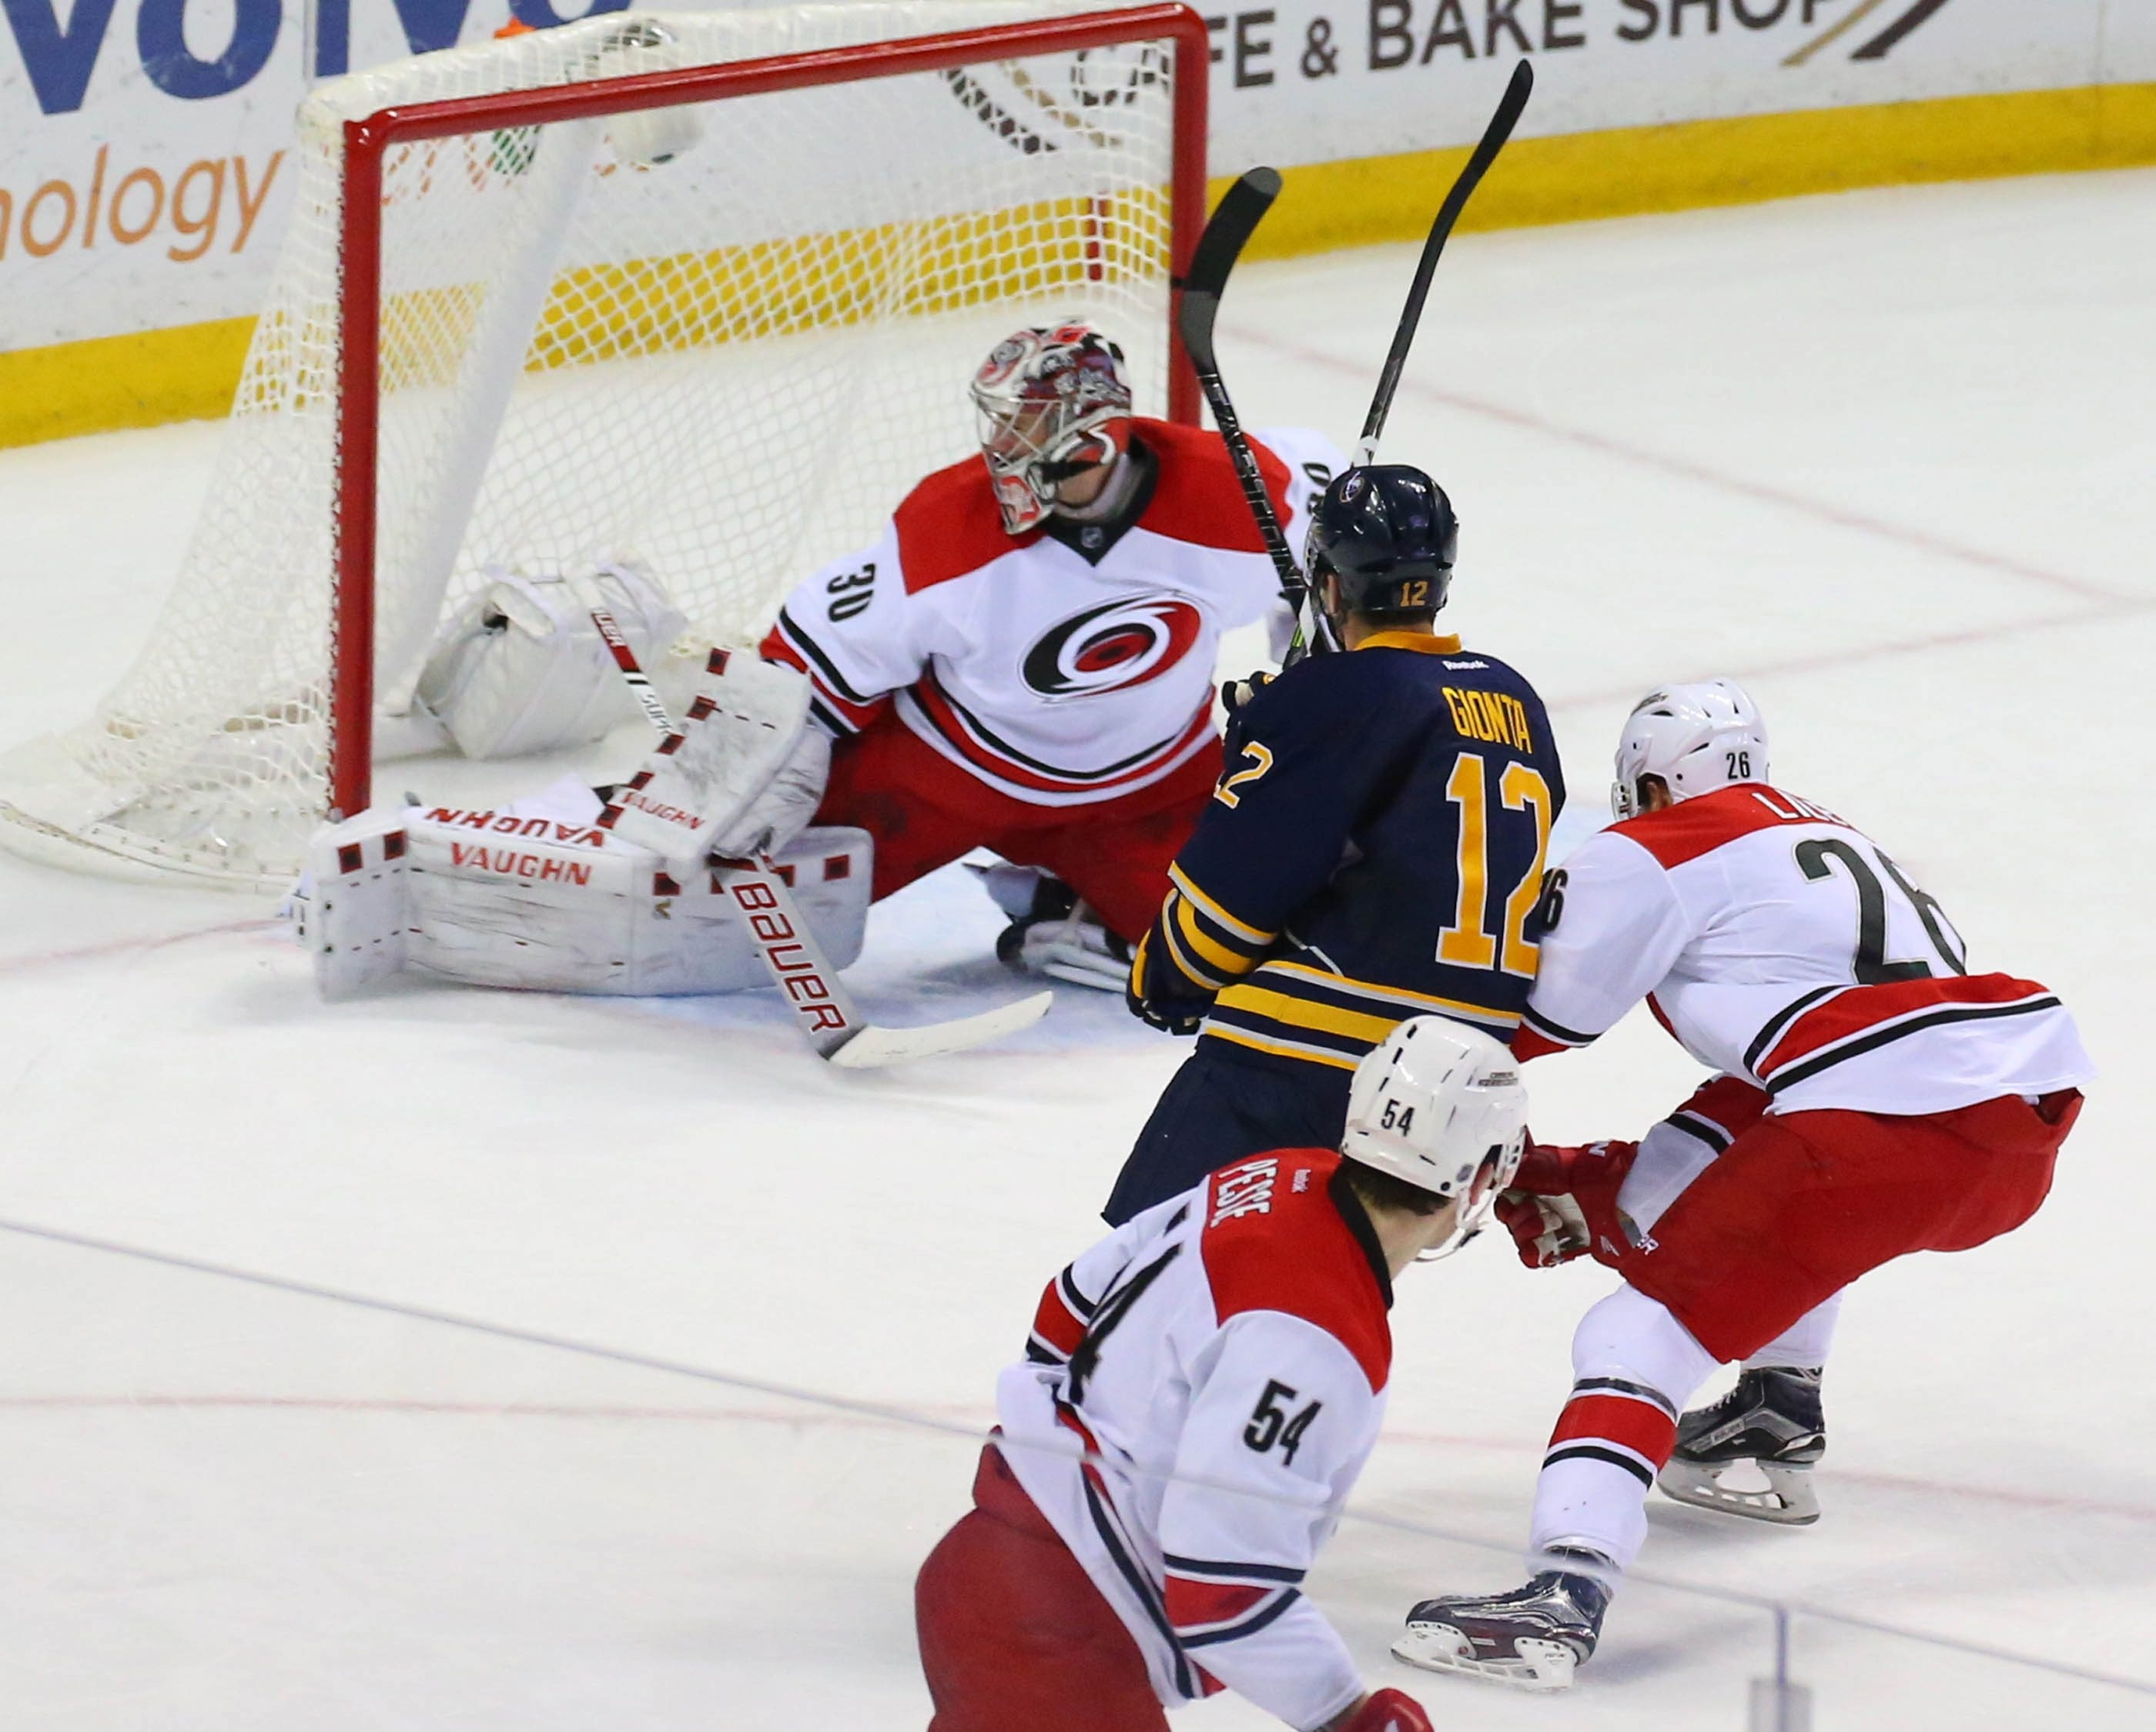 Sabres captain Brian Gionta scores on Hurricanes goalie Cam Ward during Friday's game at the First Niagara Center.